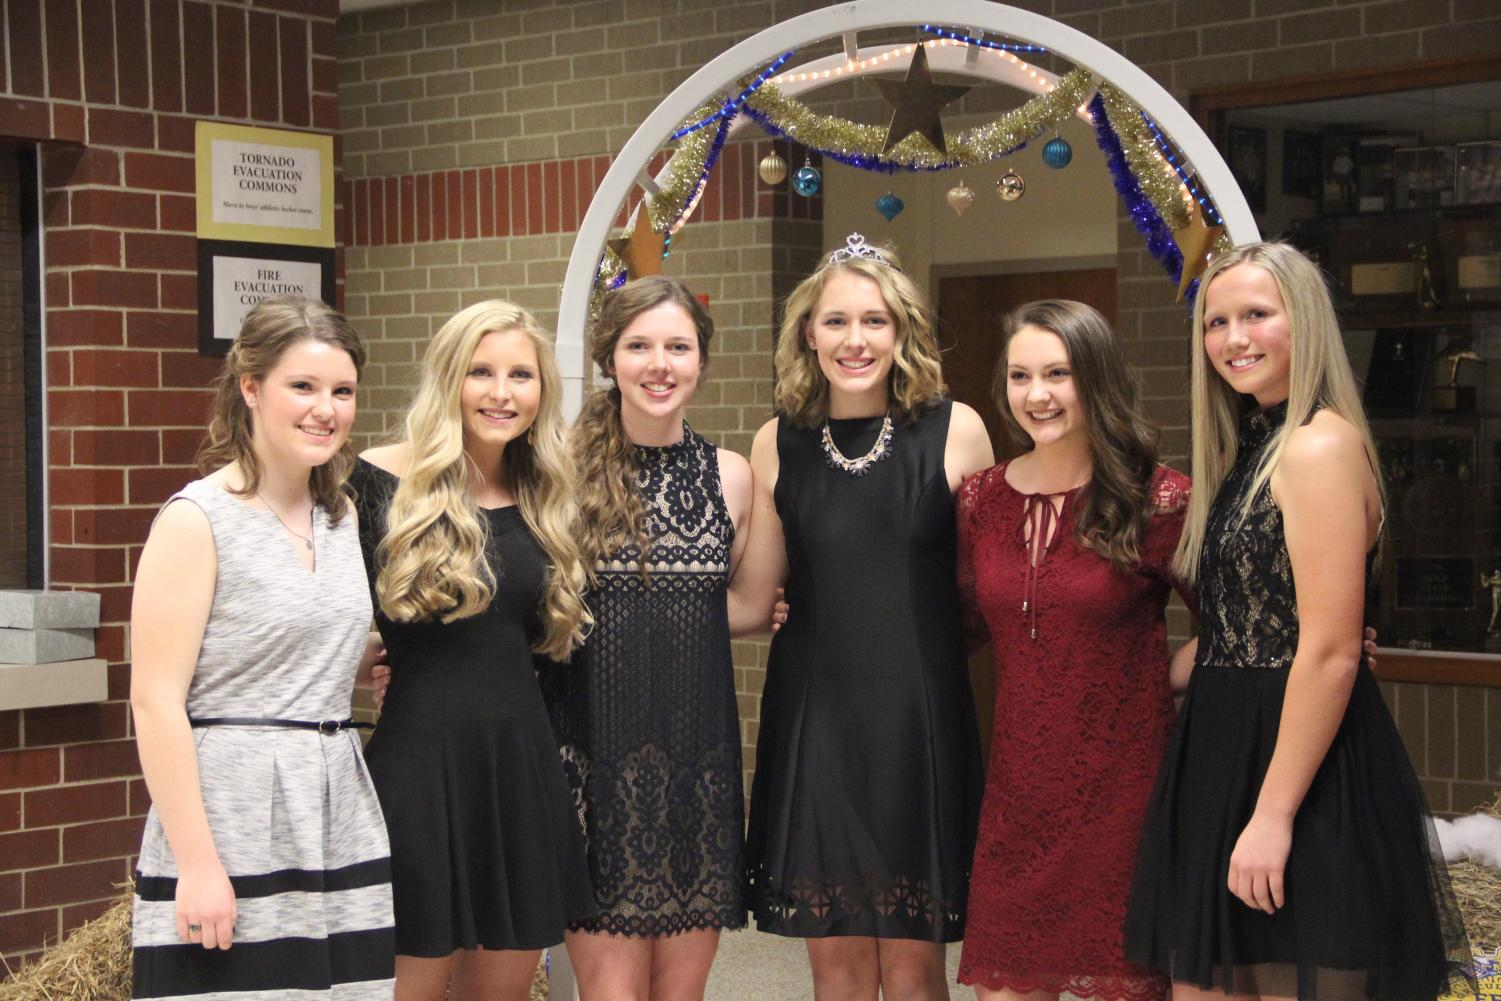 SAY CHEESE - Members of the 2017 Winter Formal court pose after the crowning of the queen. The court consisted of Nicole Eilts, Kirsten Brown, Emily Saeugling, Heather Freund, Chloe Newbury, and Ally Anderson.